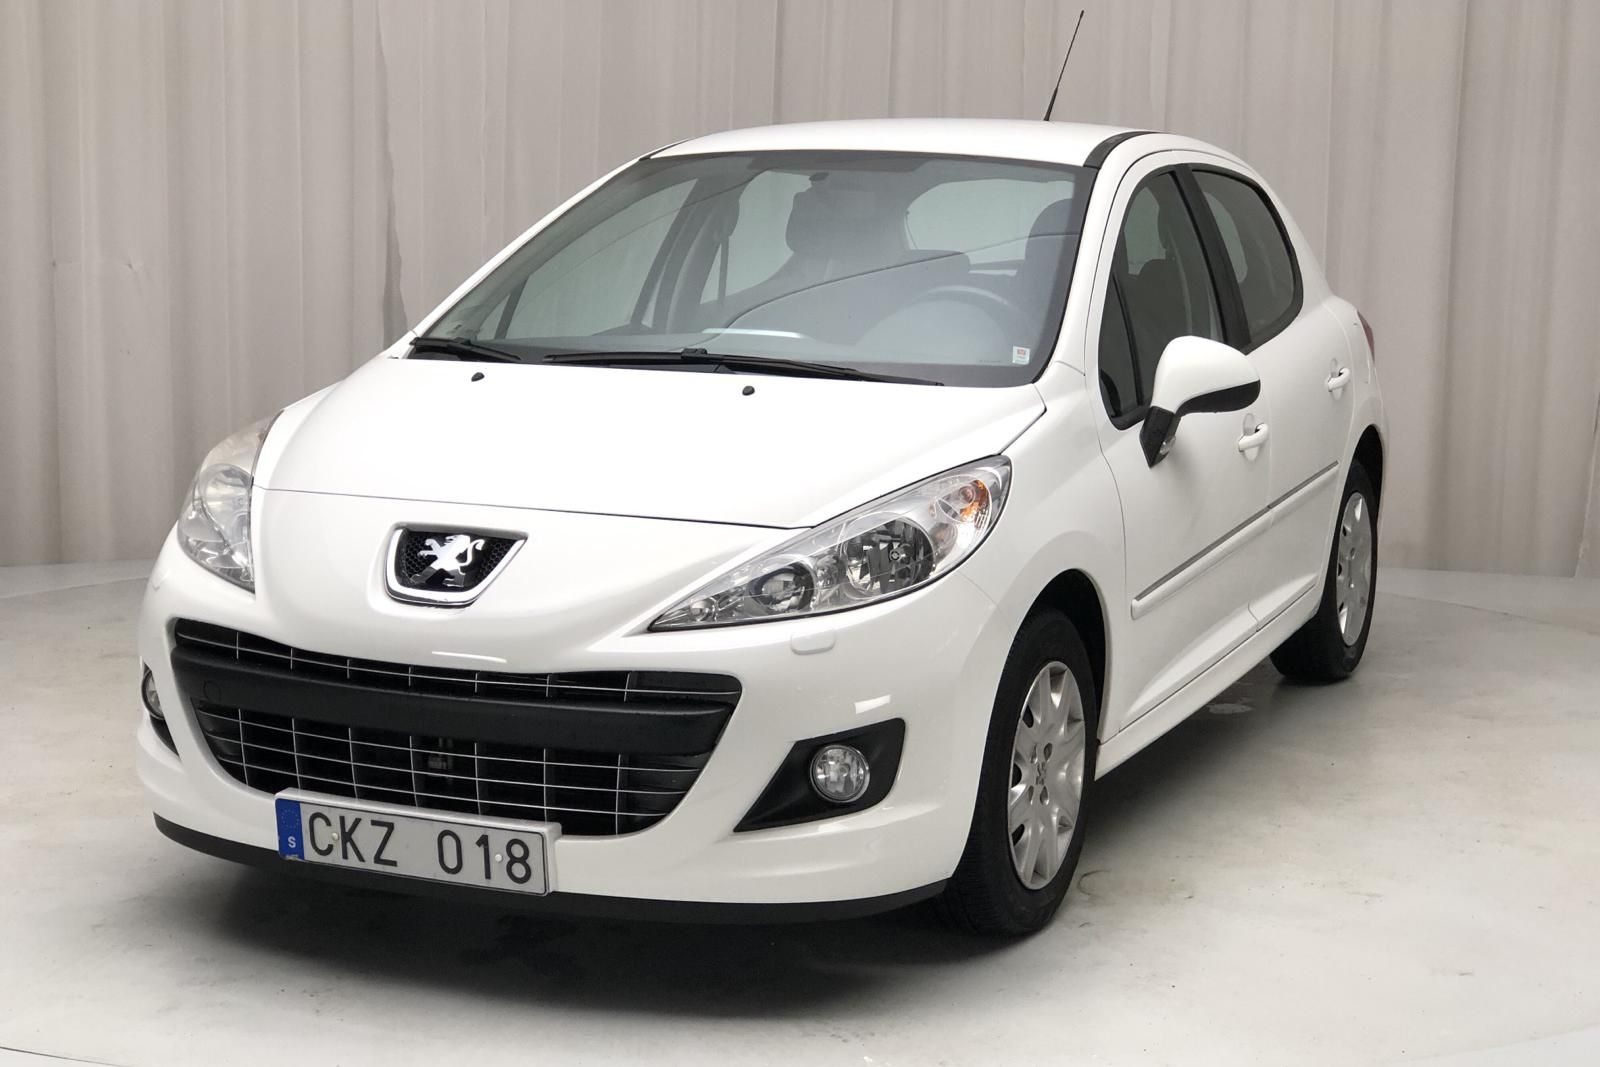 Peugeot 207 1.4 HDi 5dr (68 PS)